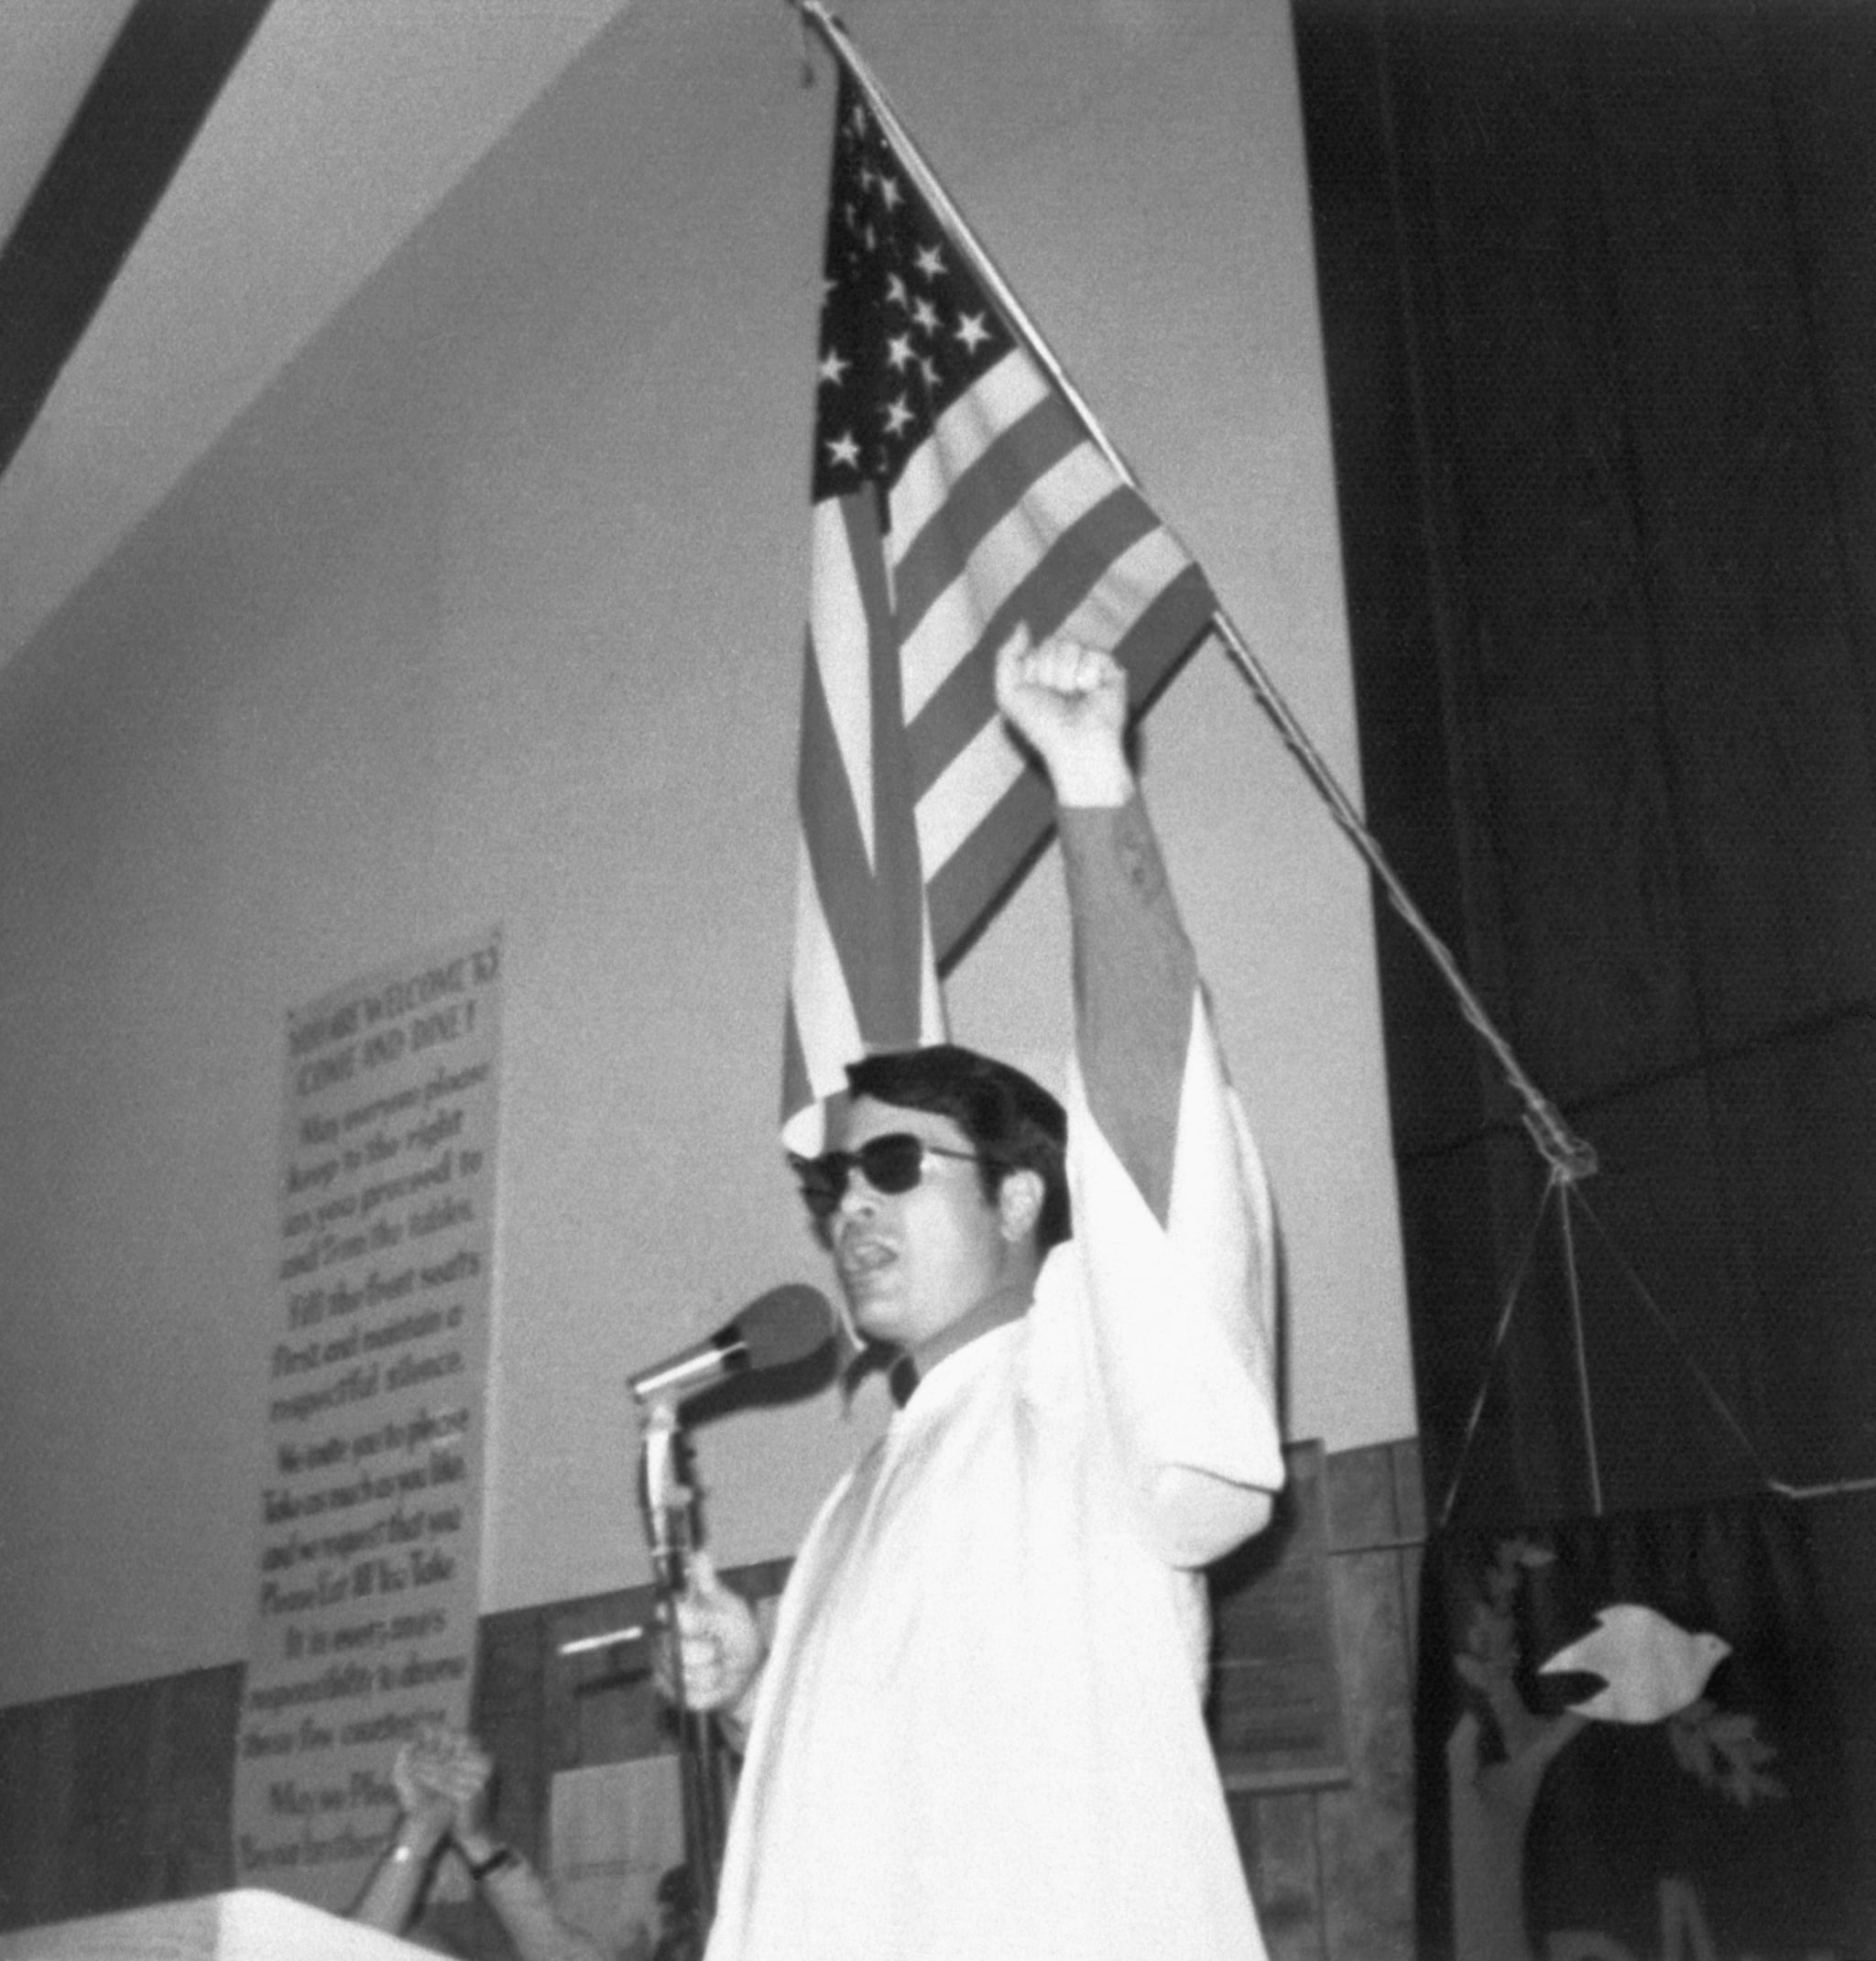 cult crimes jim jones Jim jones is the most infamous cult leader in american history jim jones had certain pentecostal beliefs,  the 10 most famous cults in united states history.